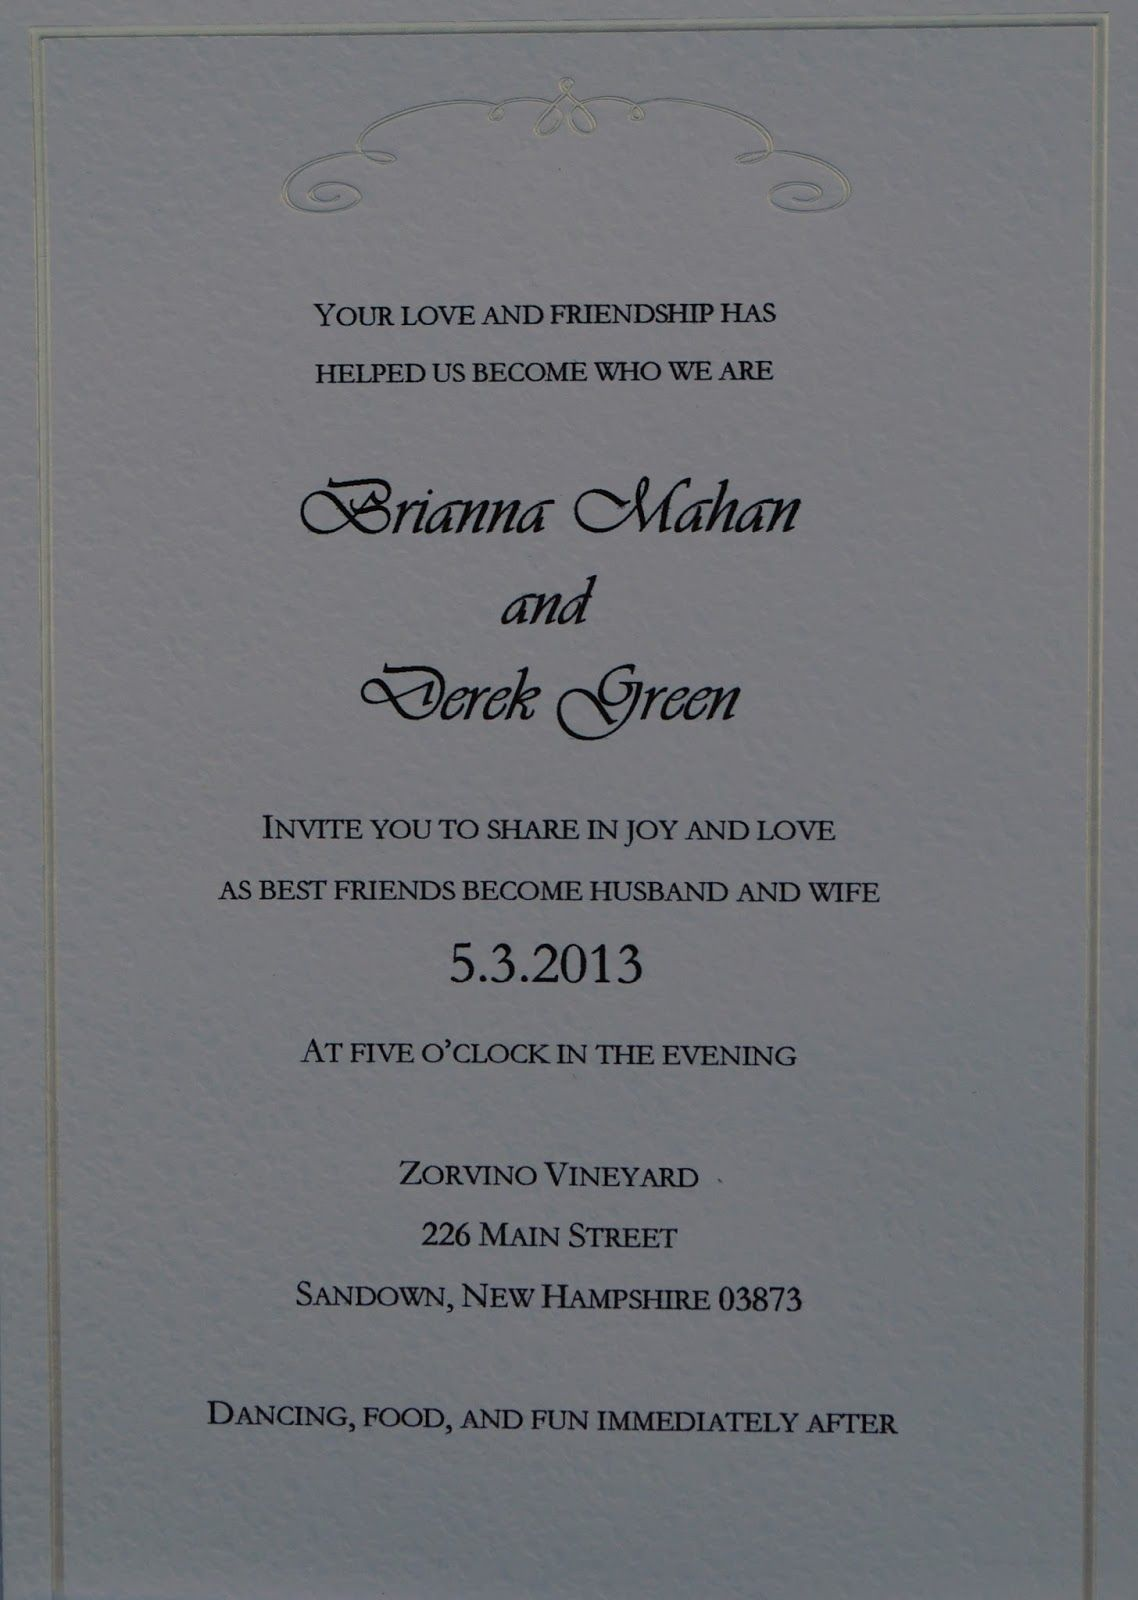 wedding invitation wording with no reception%0A  Wedding  invitation  wording  Alternative wording options